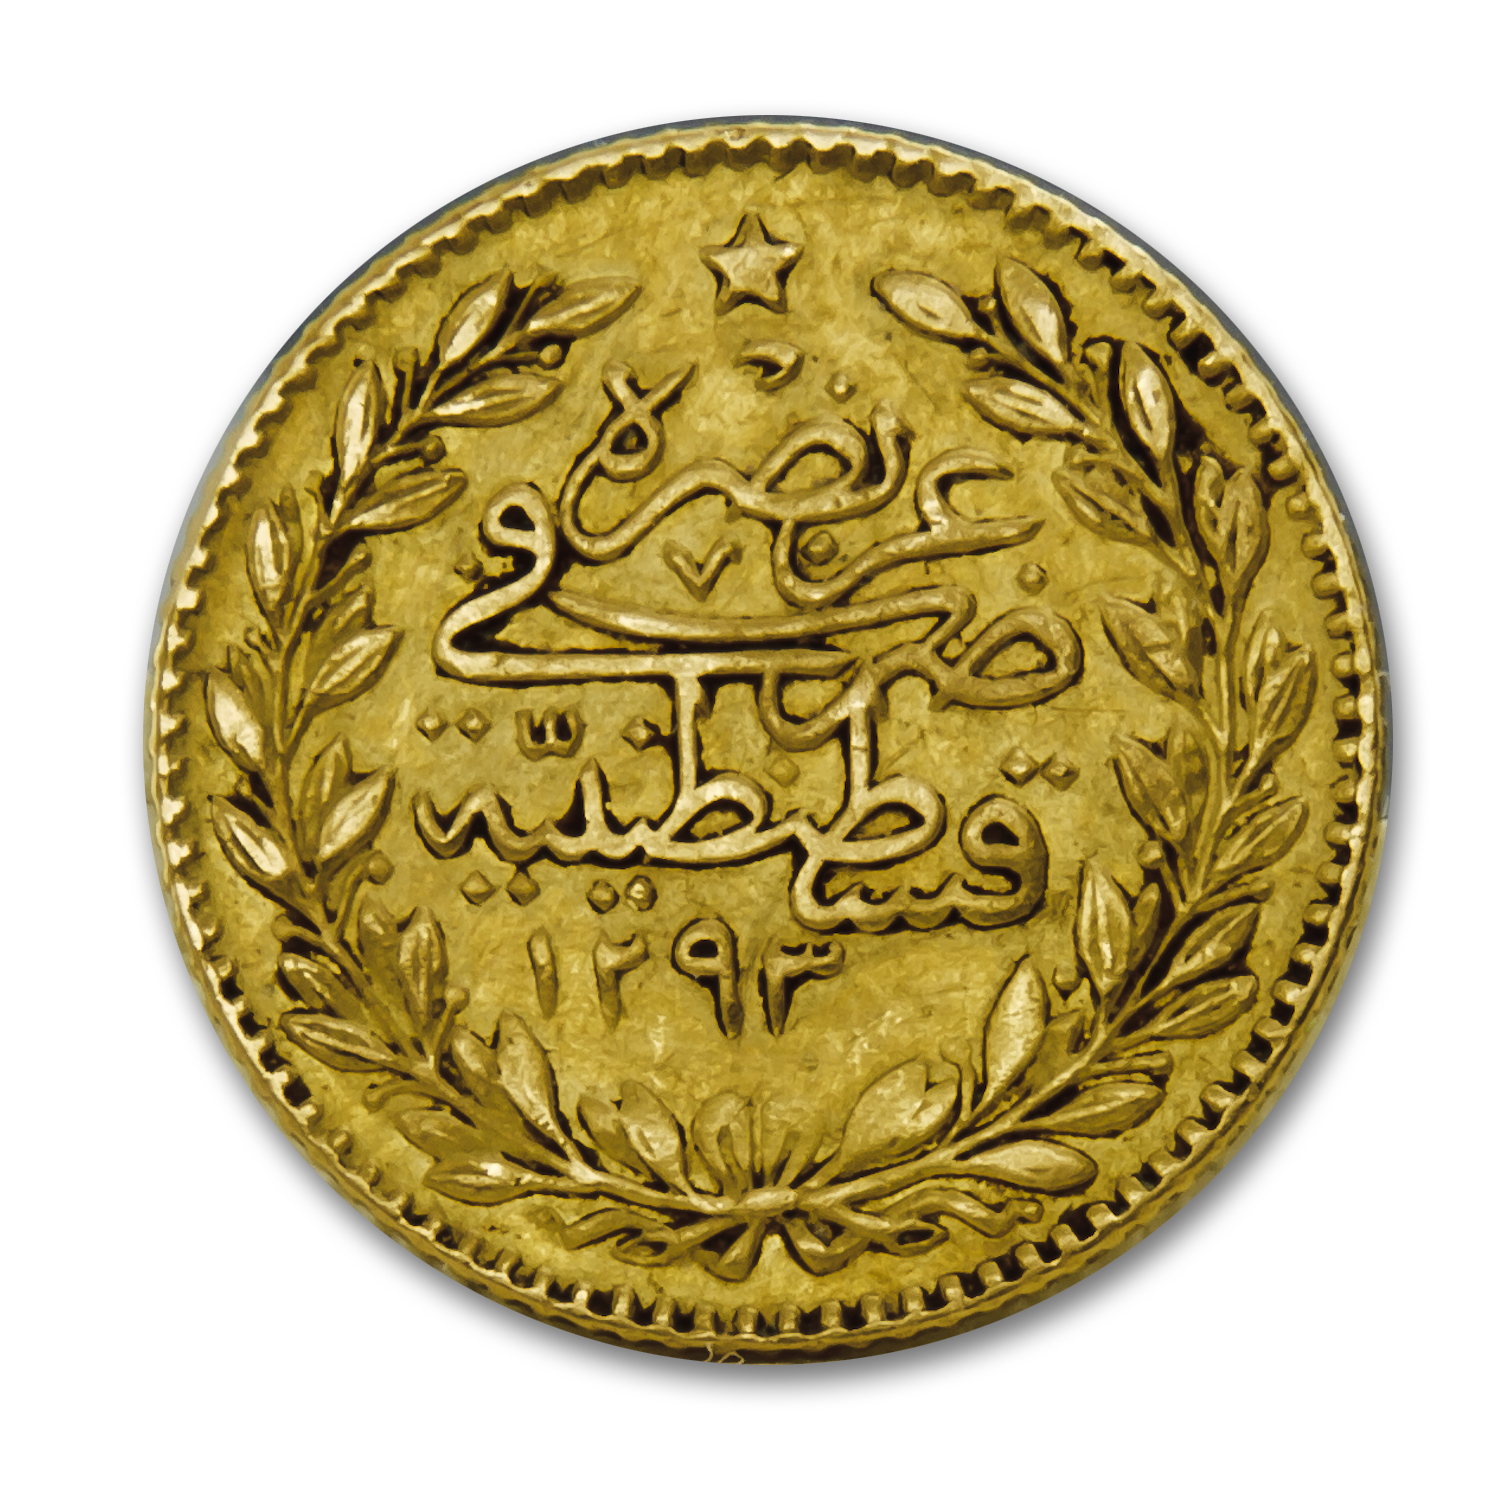 Turkey 19th Century 25 Kurush Gold Coin Random Dates